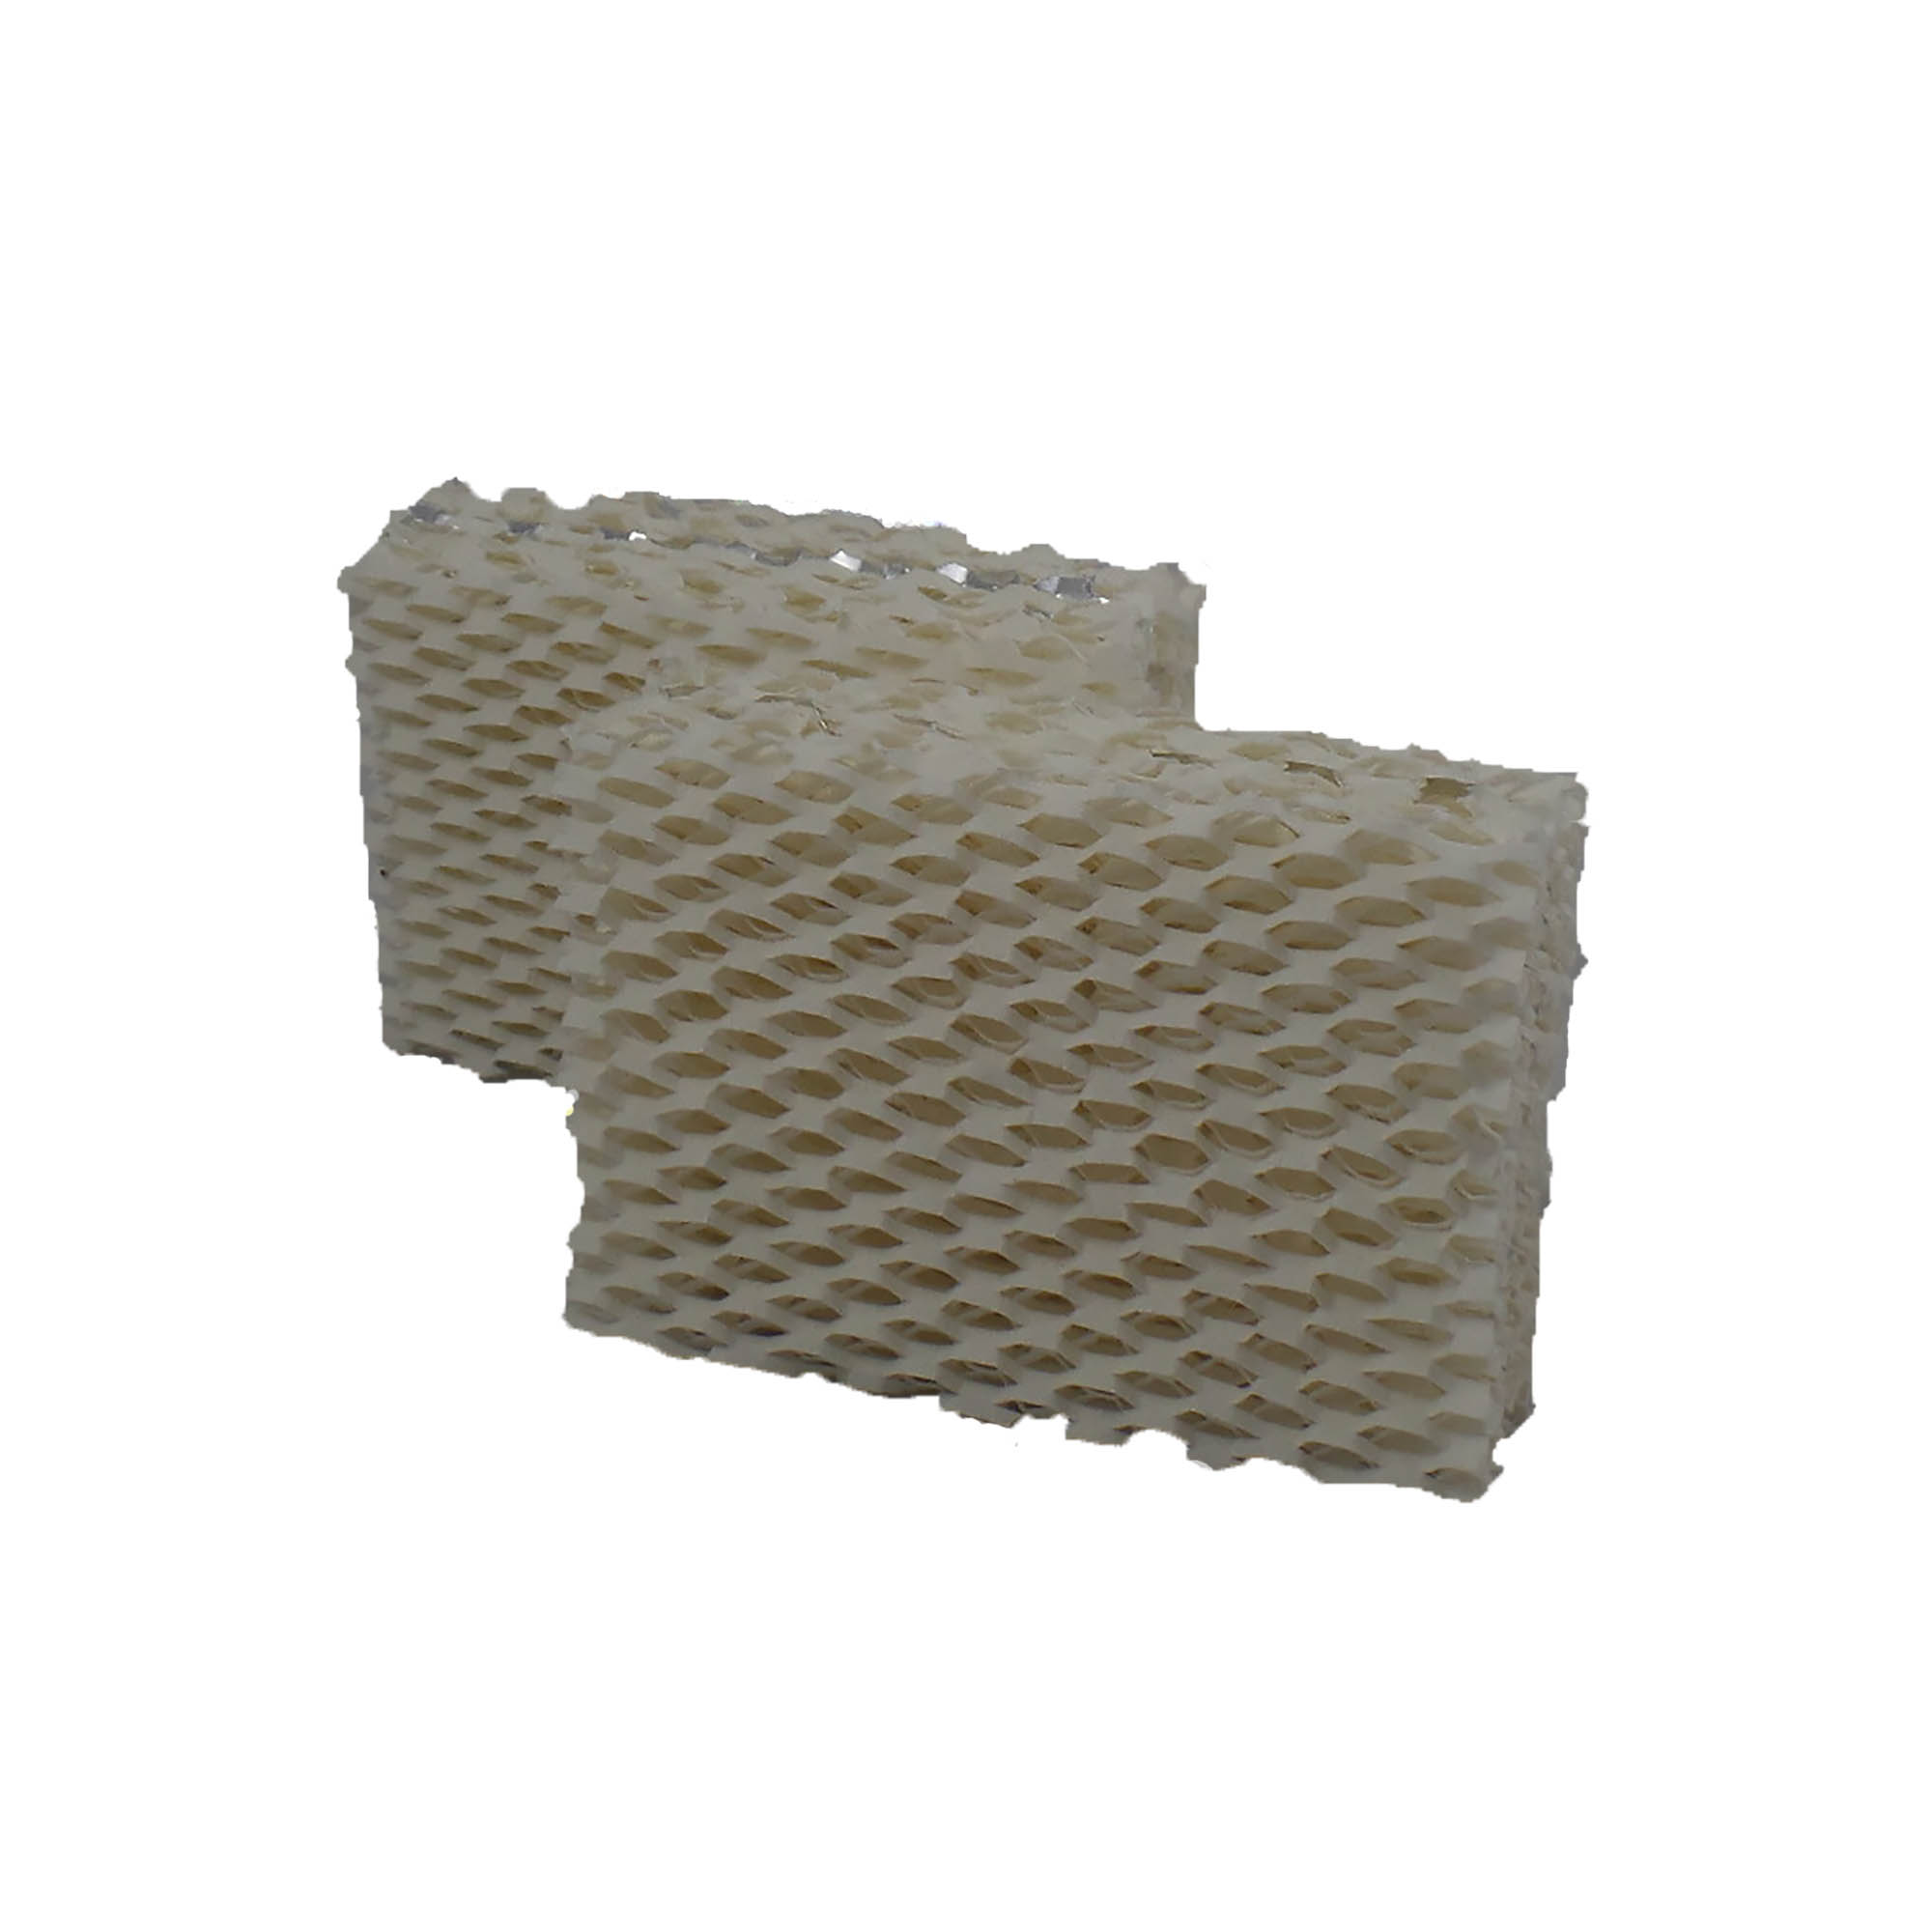 2 PACK Honeywell HCM-525 Humidifier Replacement Filters By Air Filter Factory